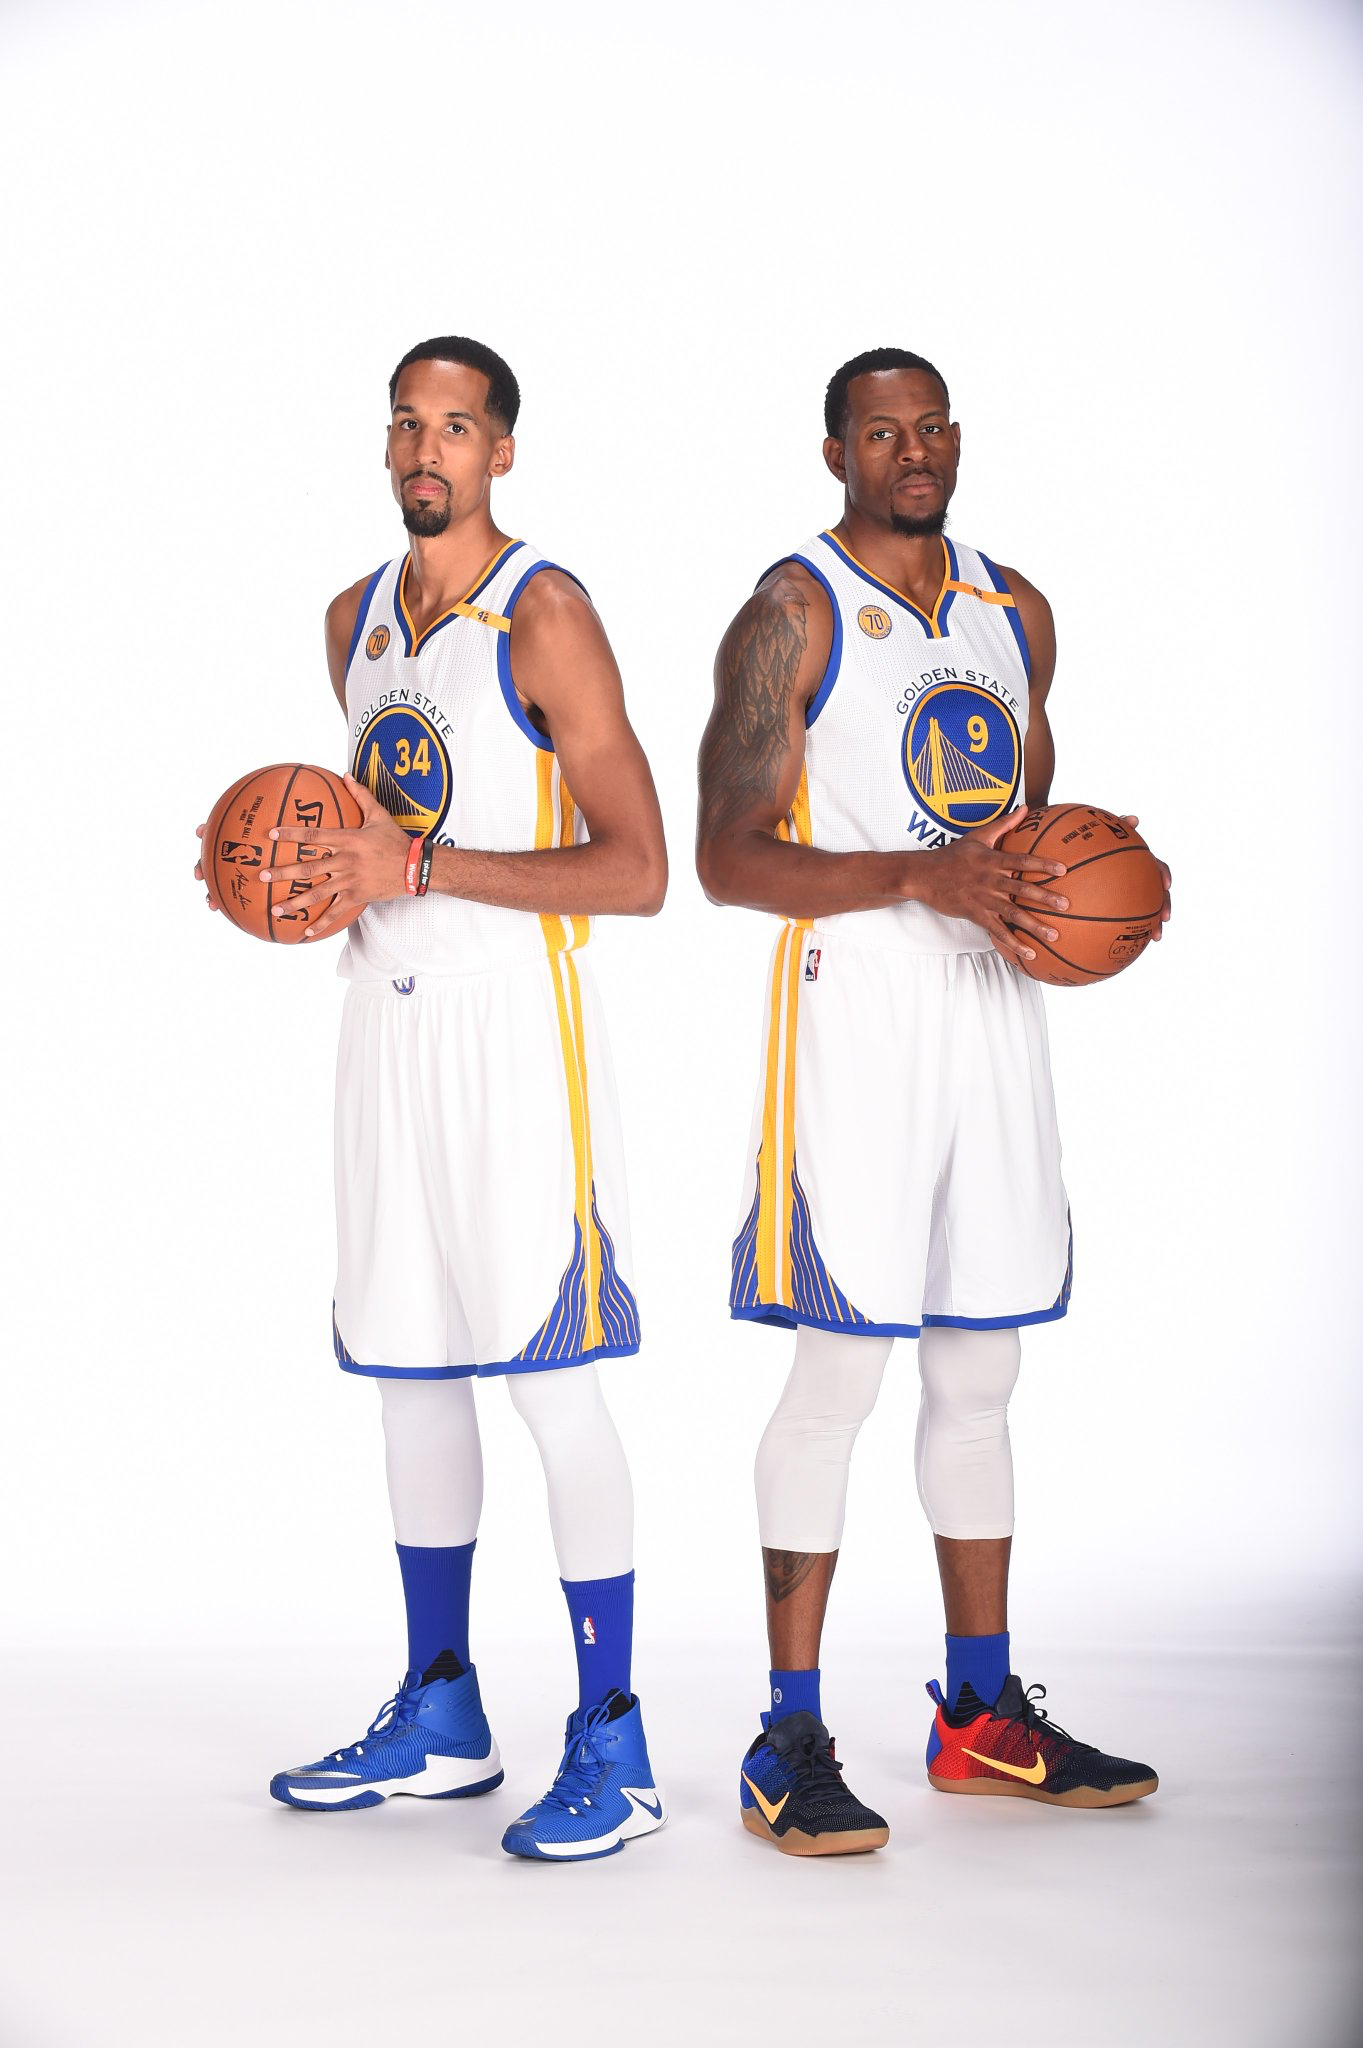 Pin By Rachelle Culbert Pegg On Athletes I Love Golden State Warriors Warrior 2018 Nba Champions